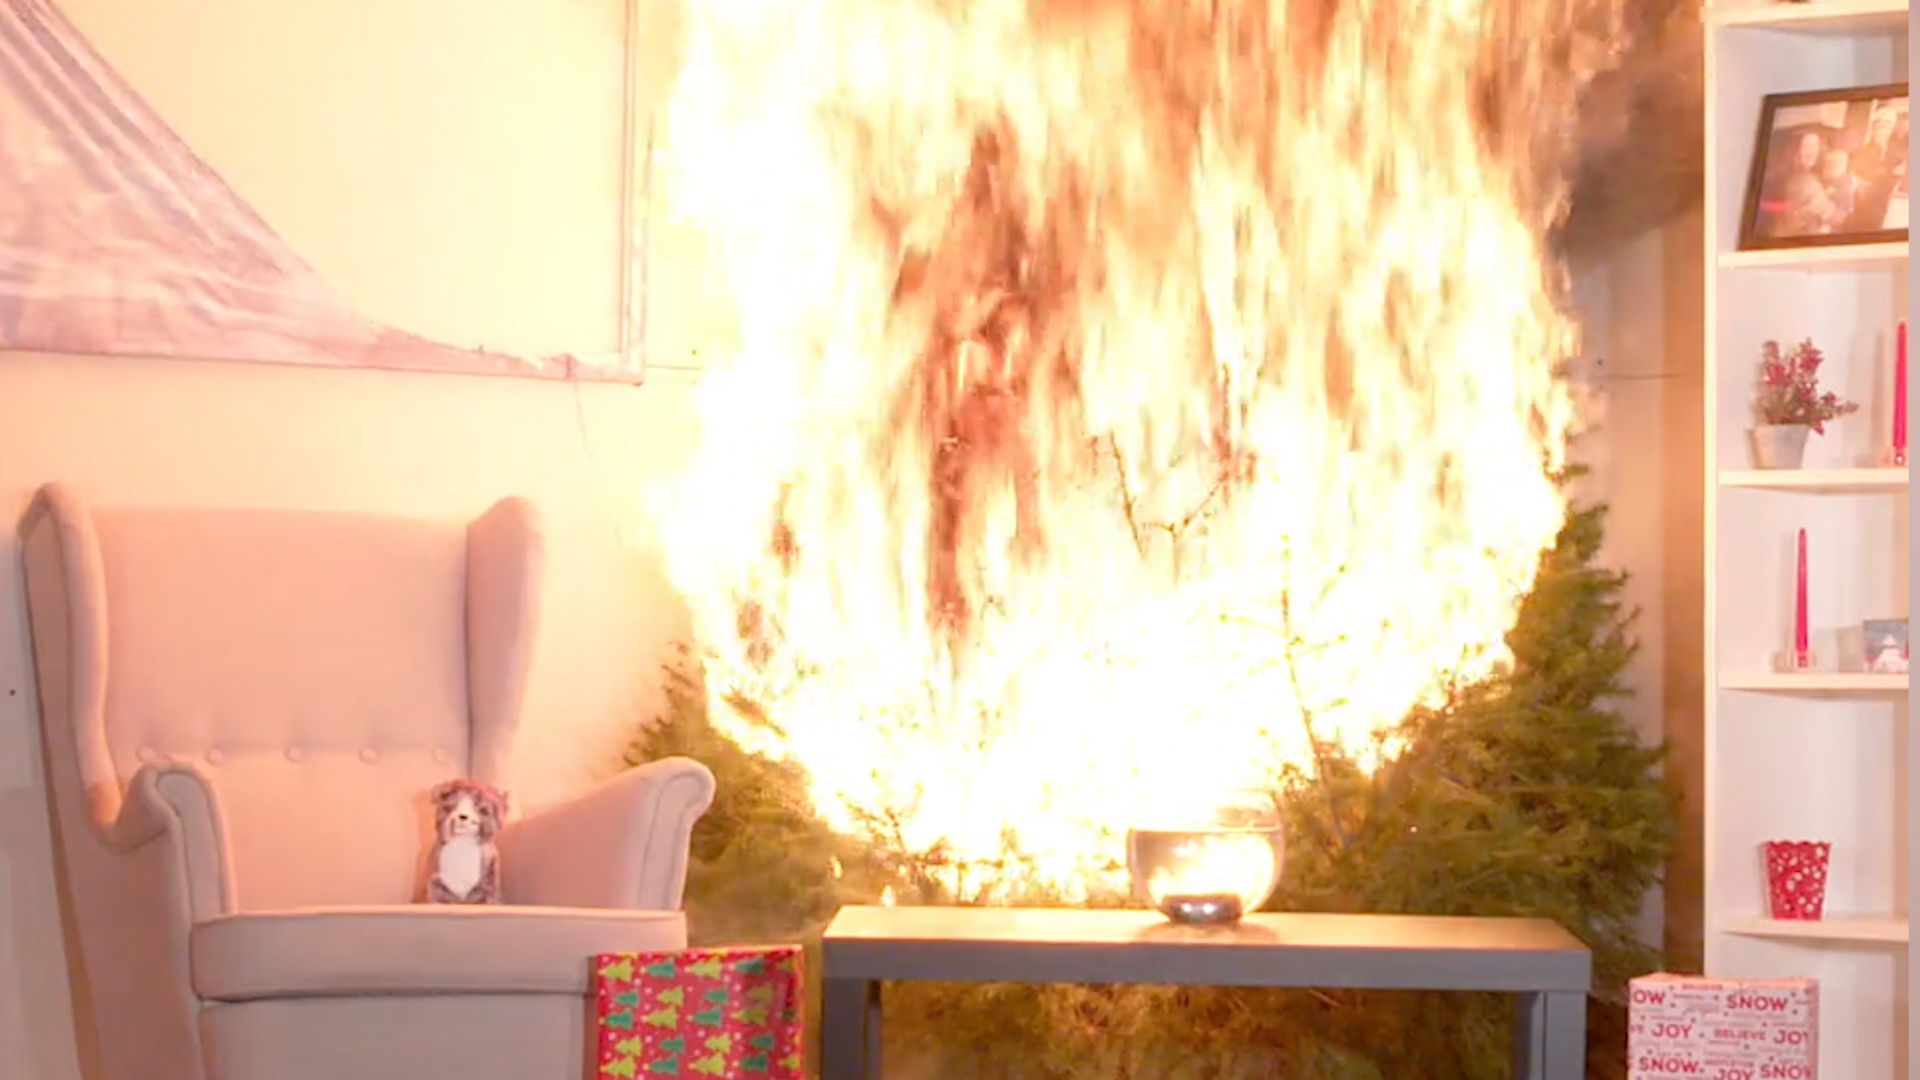 Here's what can happen when your dry Christmas tree catches fire.